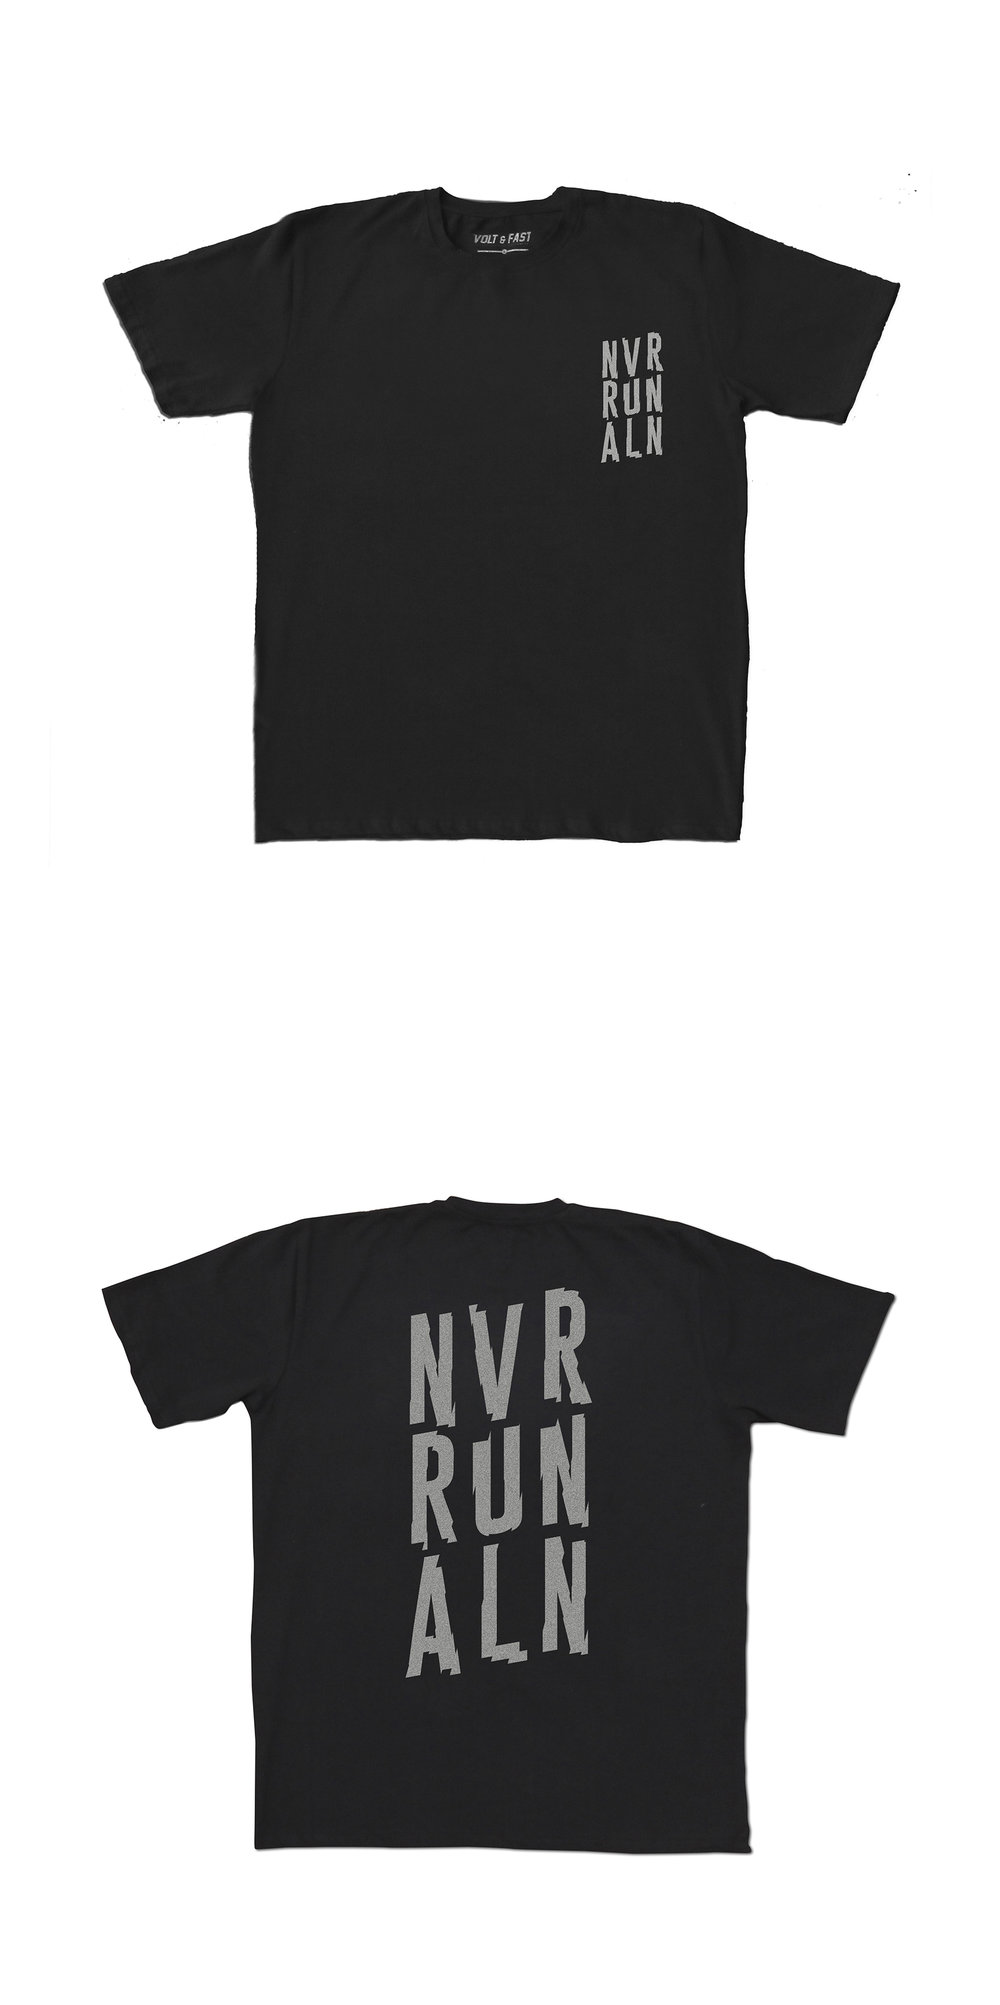 NEVER RUN ALONE   Never Not Running Collection  Features:  - Cotton spandex fabric - Printed with reflective ink - Reflective label - Regular fit  Rp 250.000